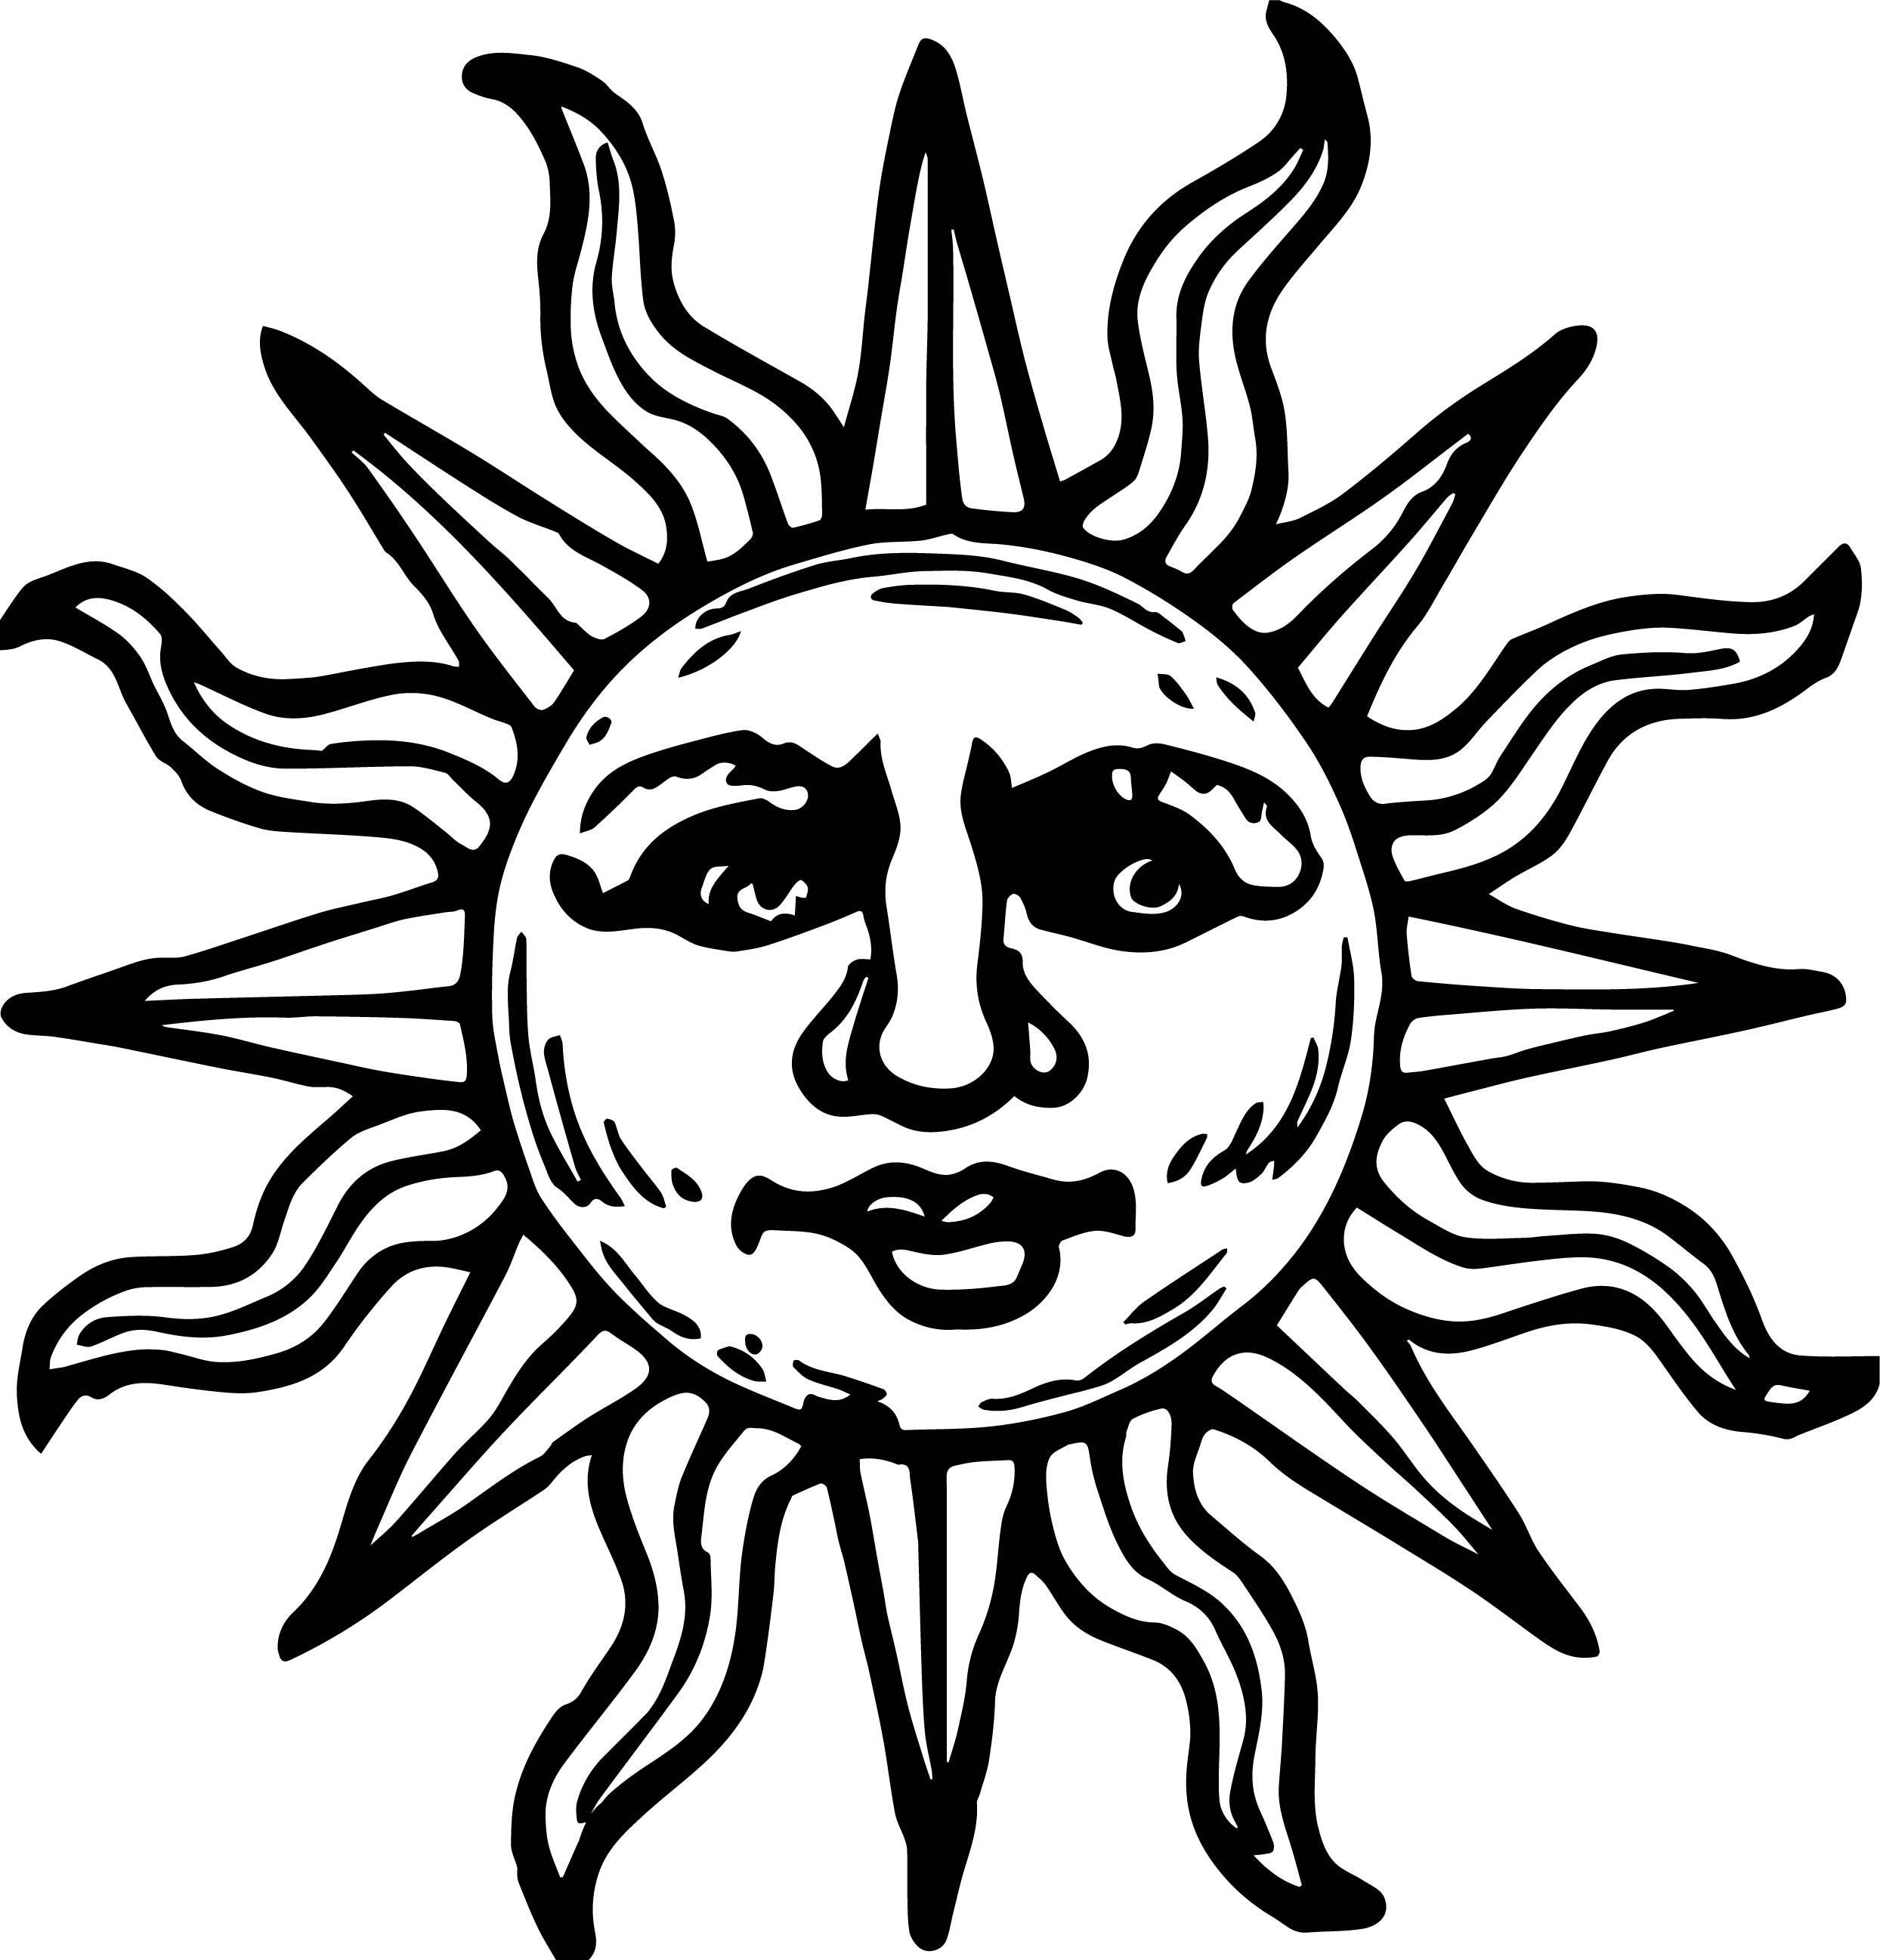 Aztec sun drawing images galleries for Aztec sun coloring page